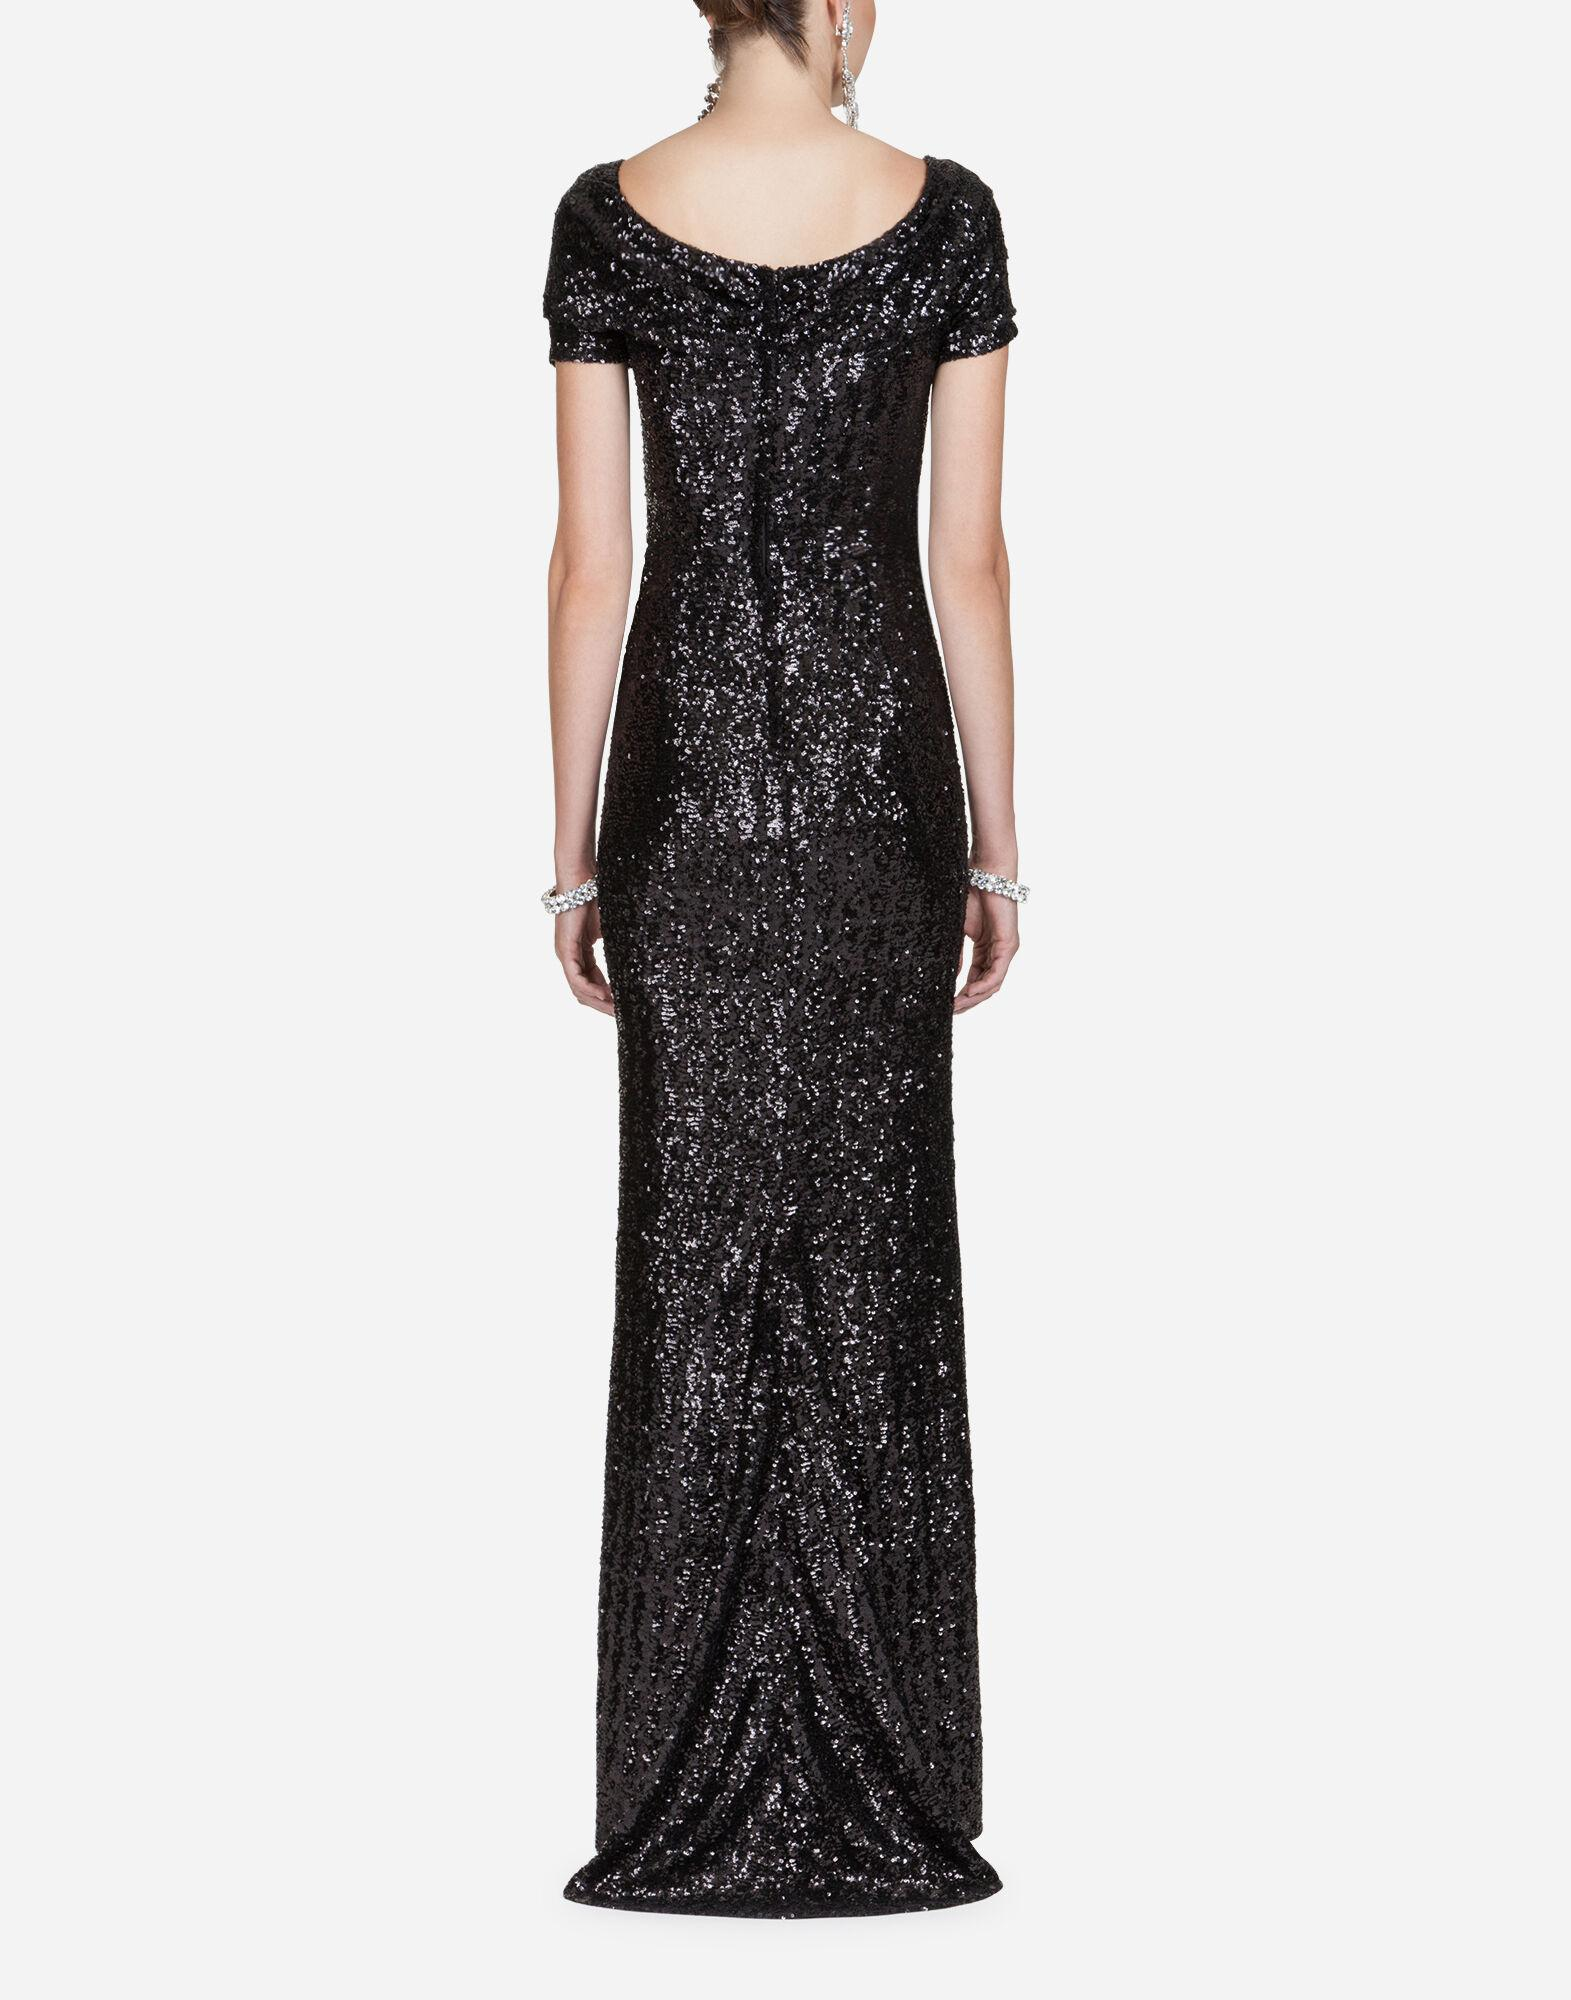 Sequined dress 1